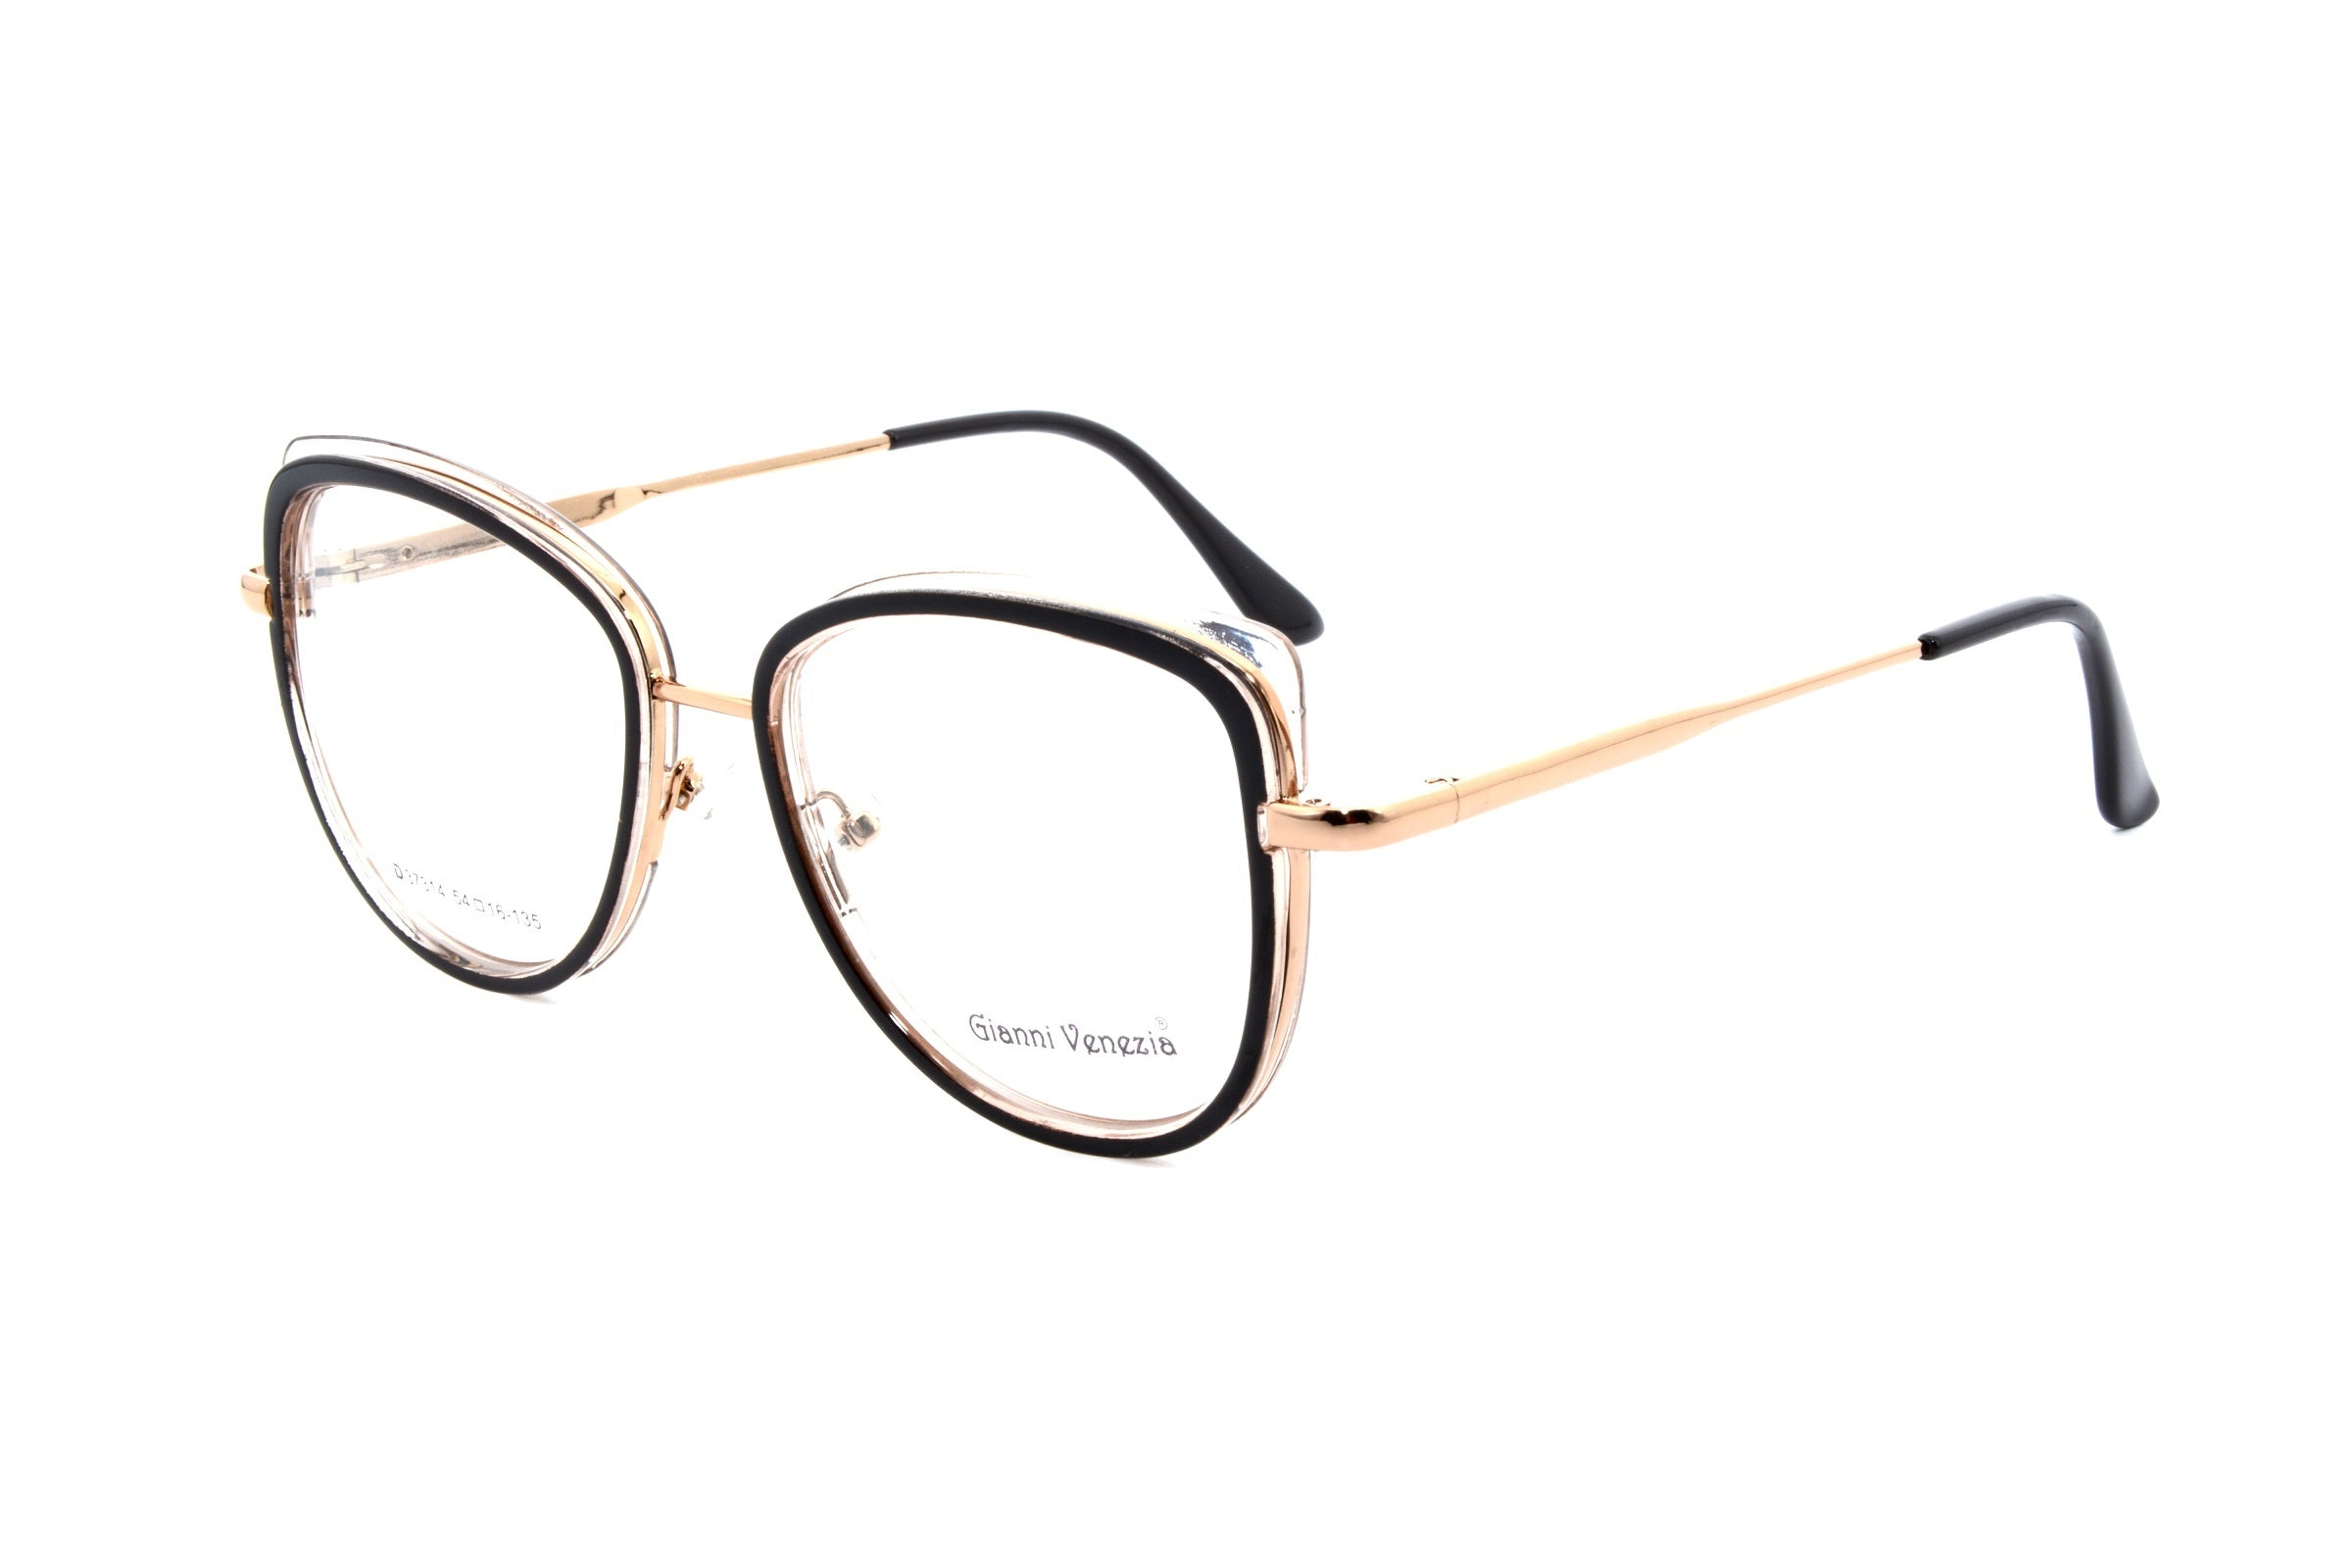 Gianni Vennezia eyewear 37314, C2 - Optics Trading